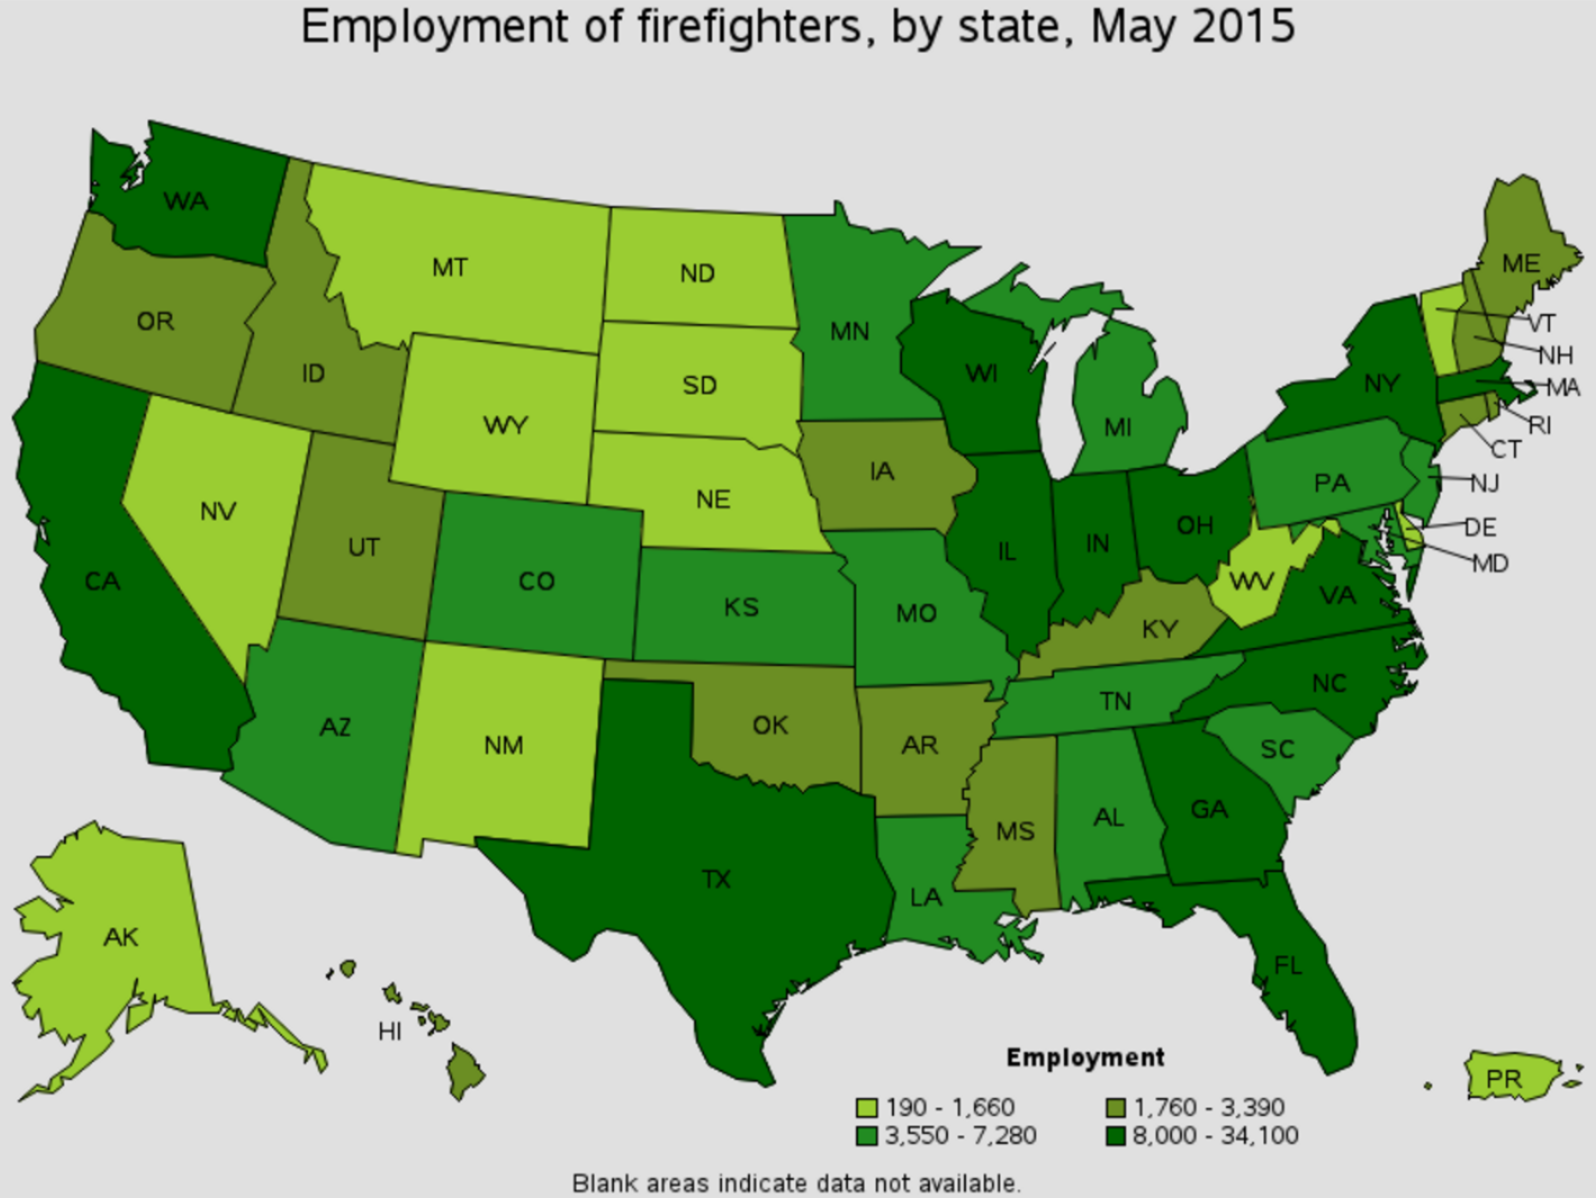 firefighter job outlook by state Norman Oklahoma